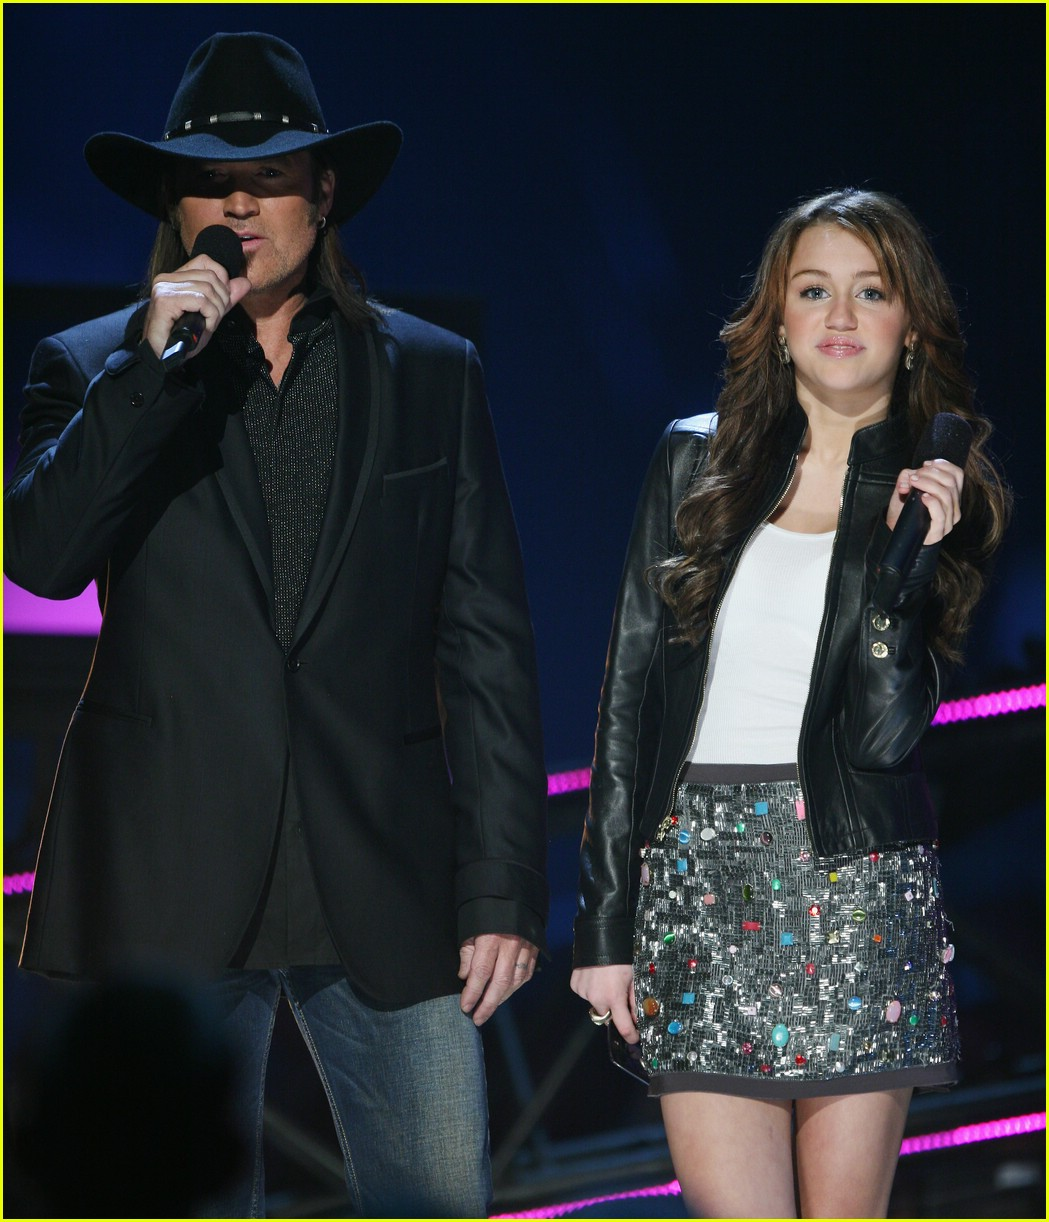 miley cyrus cmt performance 2008 21